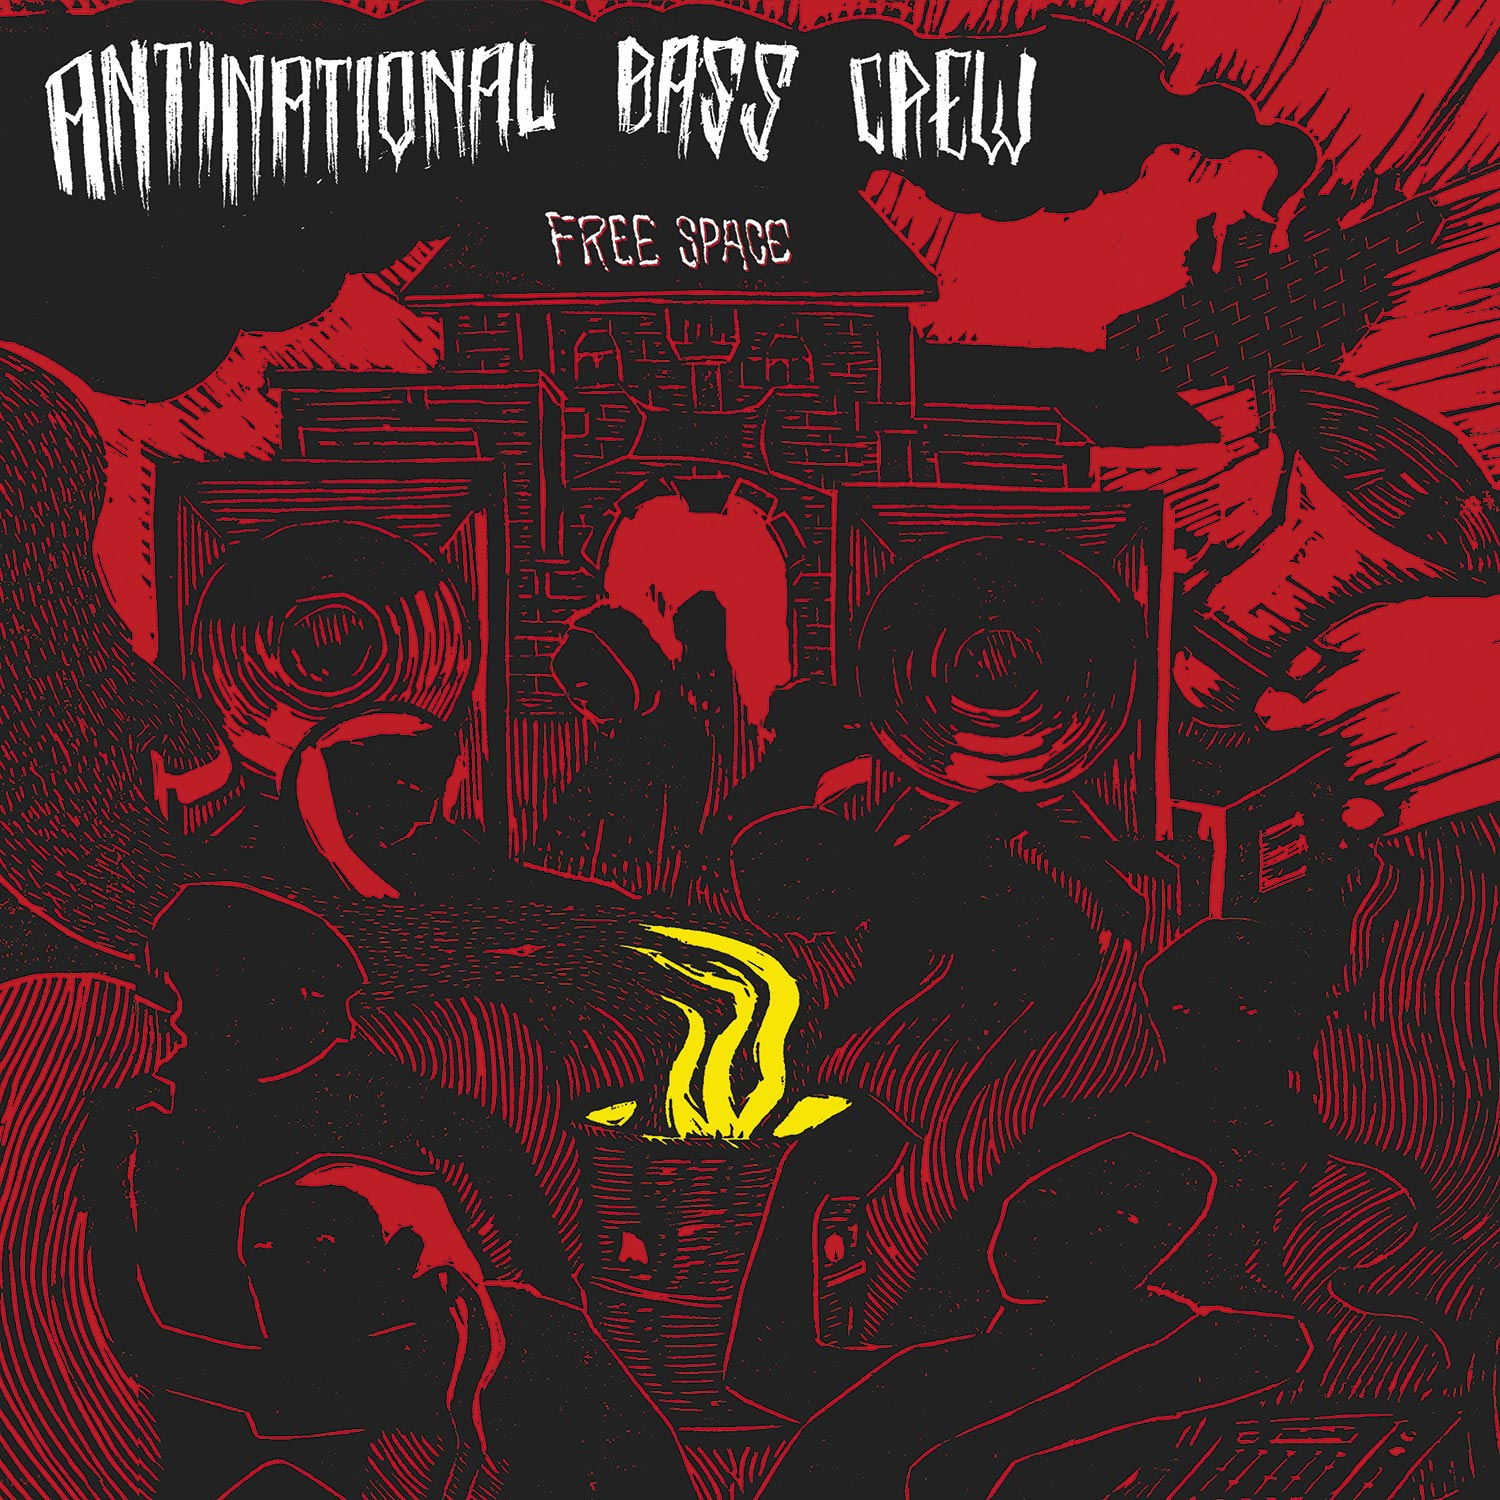 [FFM070] Antinational Bass Crew – Free Space